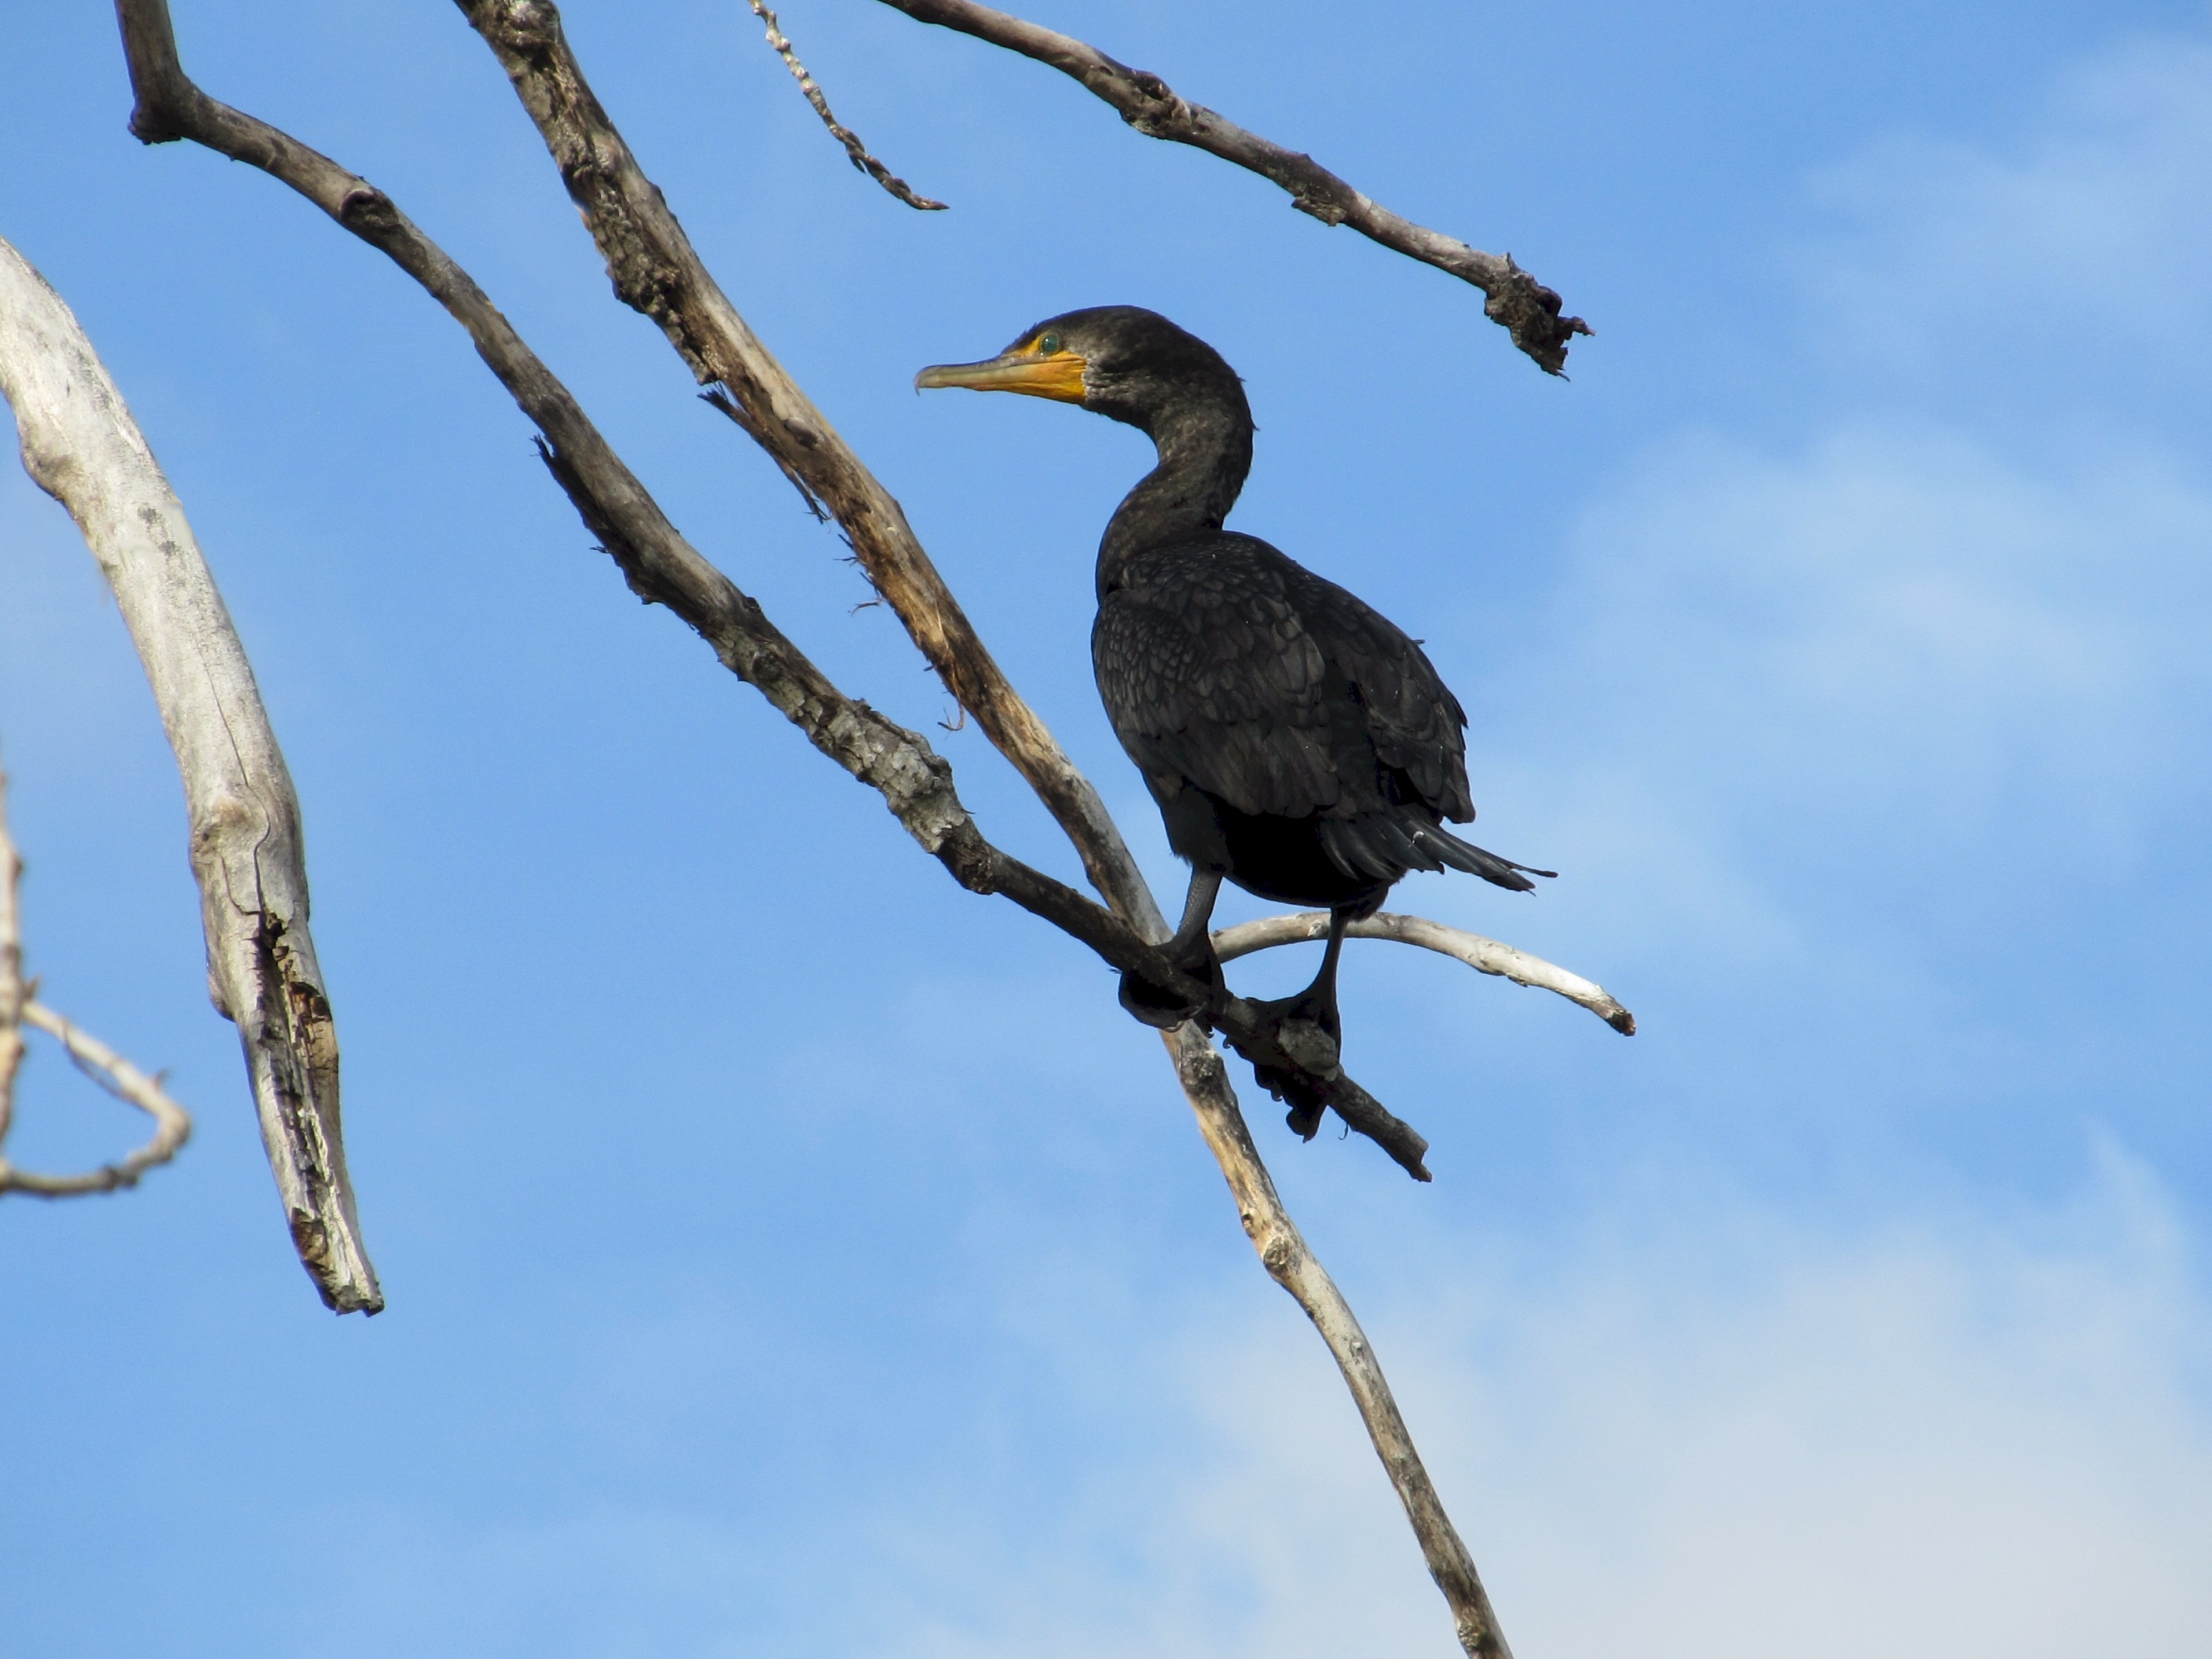 A Double-Crested Cormorant seen perched in a tree